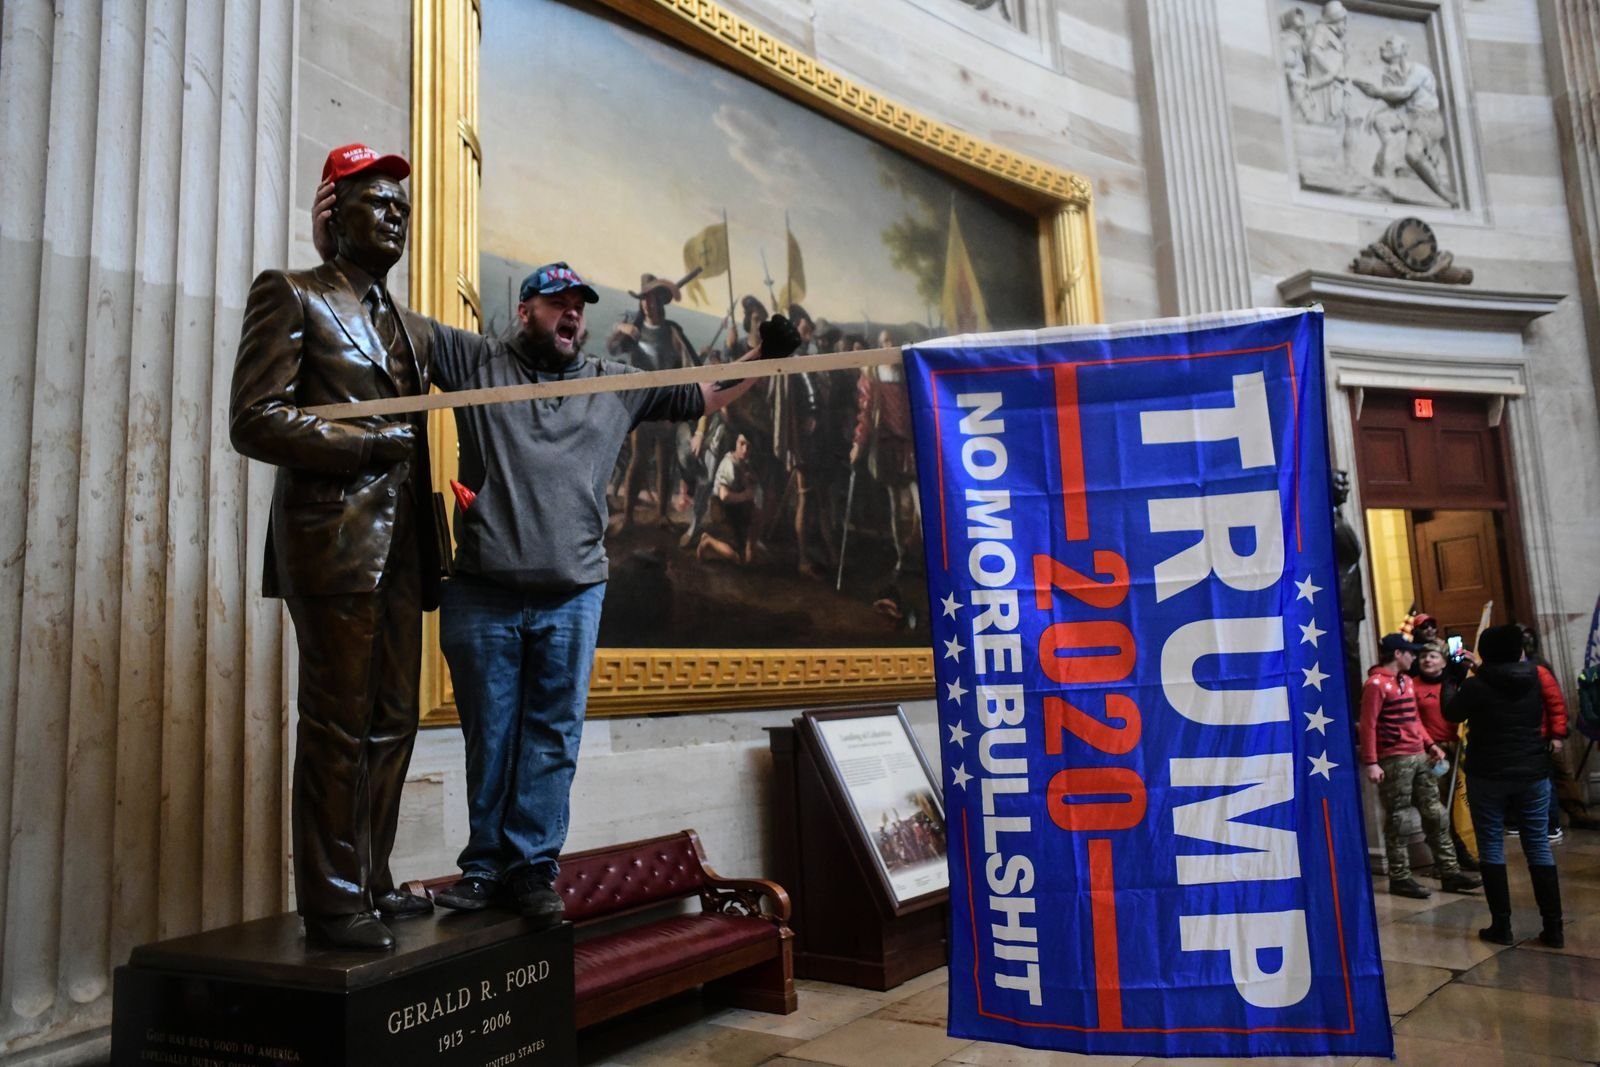 January 6, 2021, Washington, District of Columbia, USA: Pro-Trump mobs storm the US Capitol Wednesday, marauding in hal